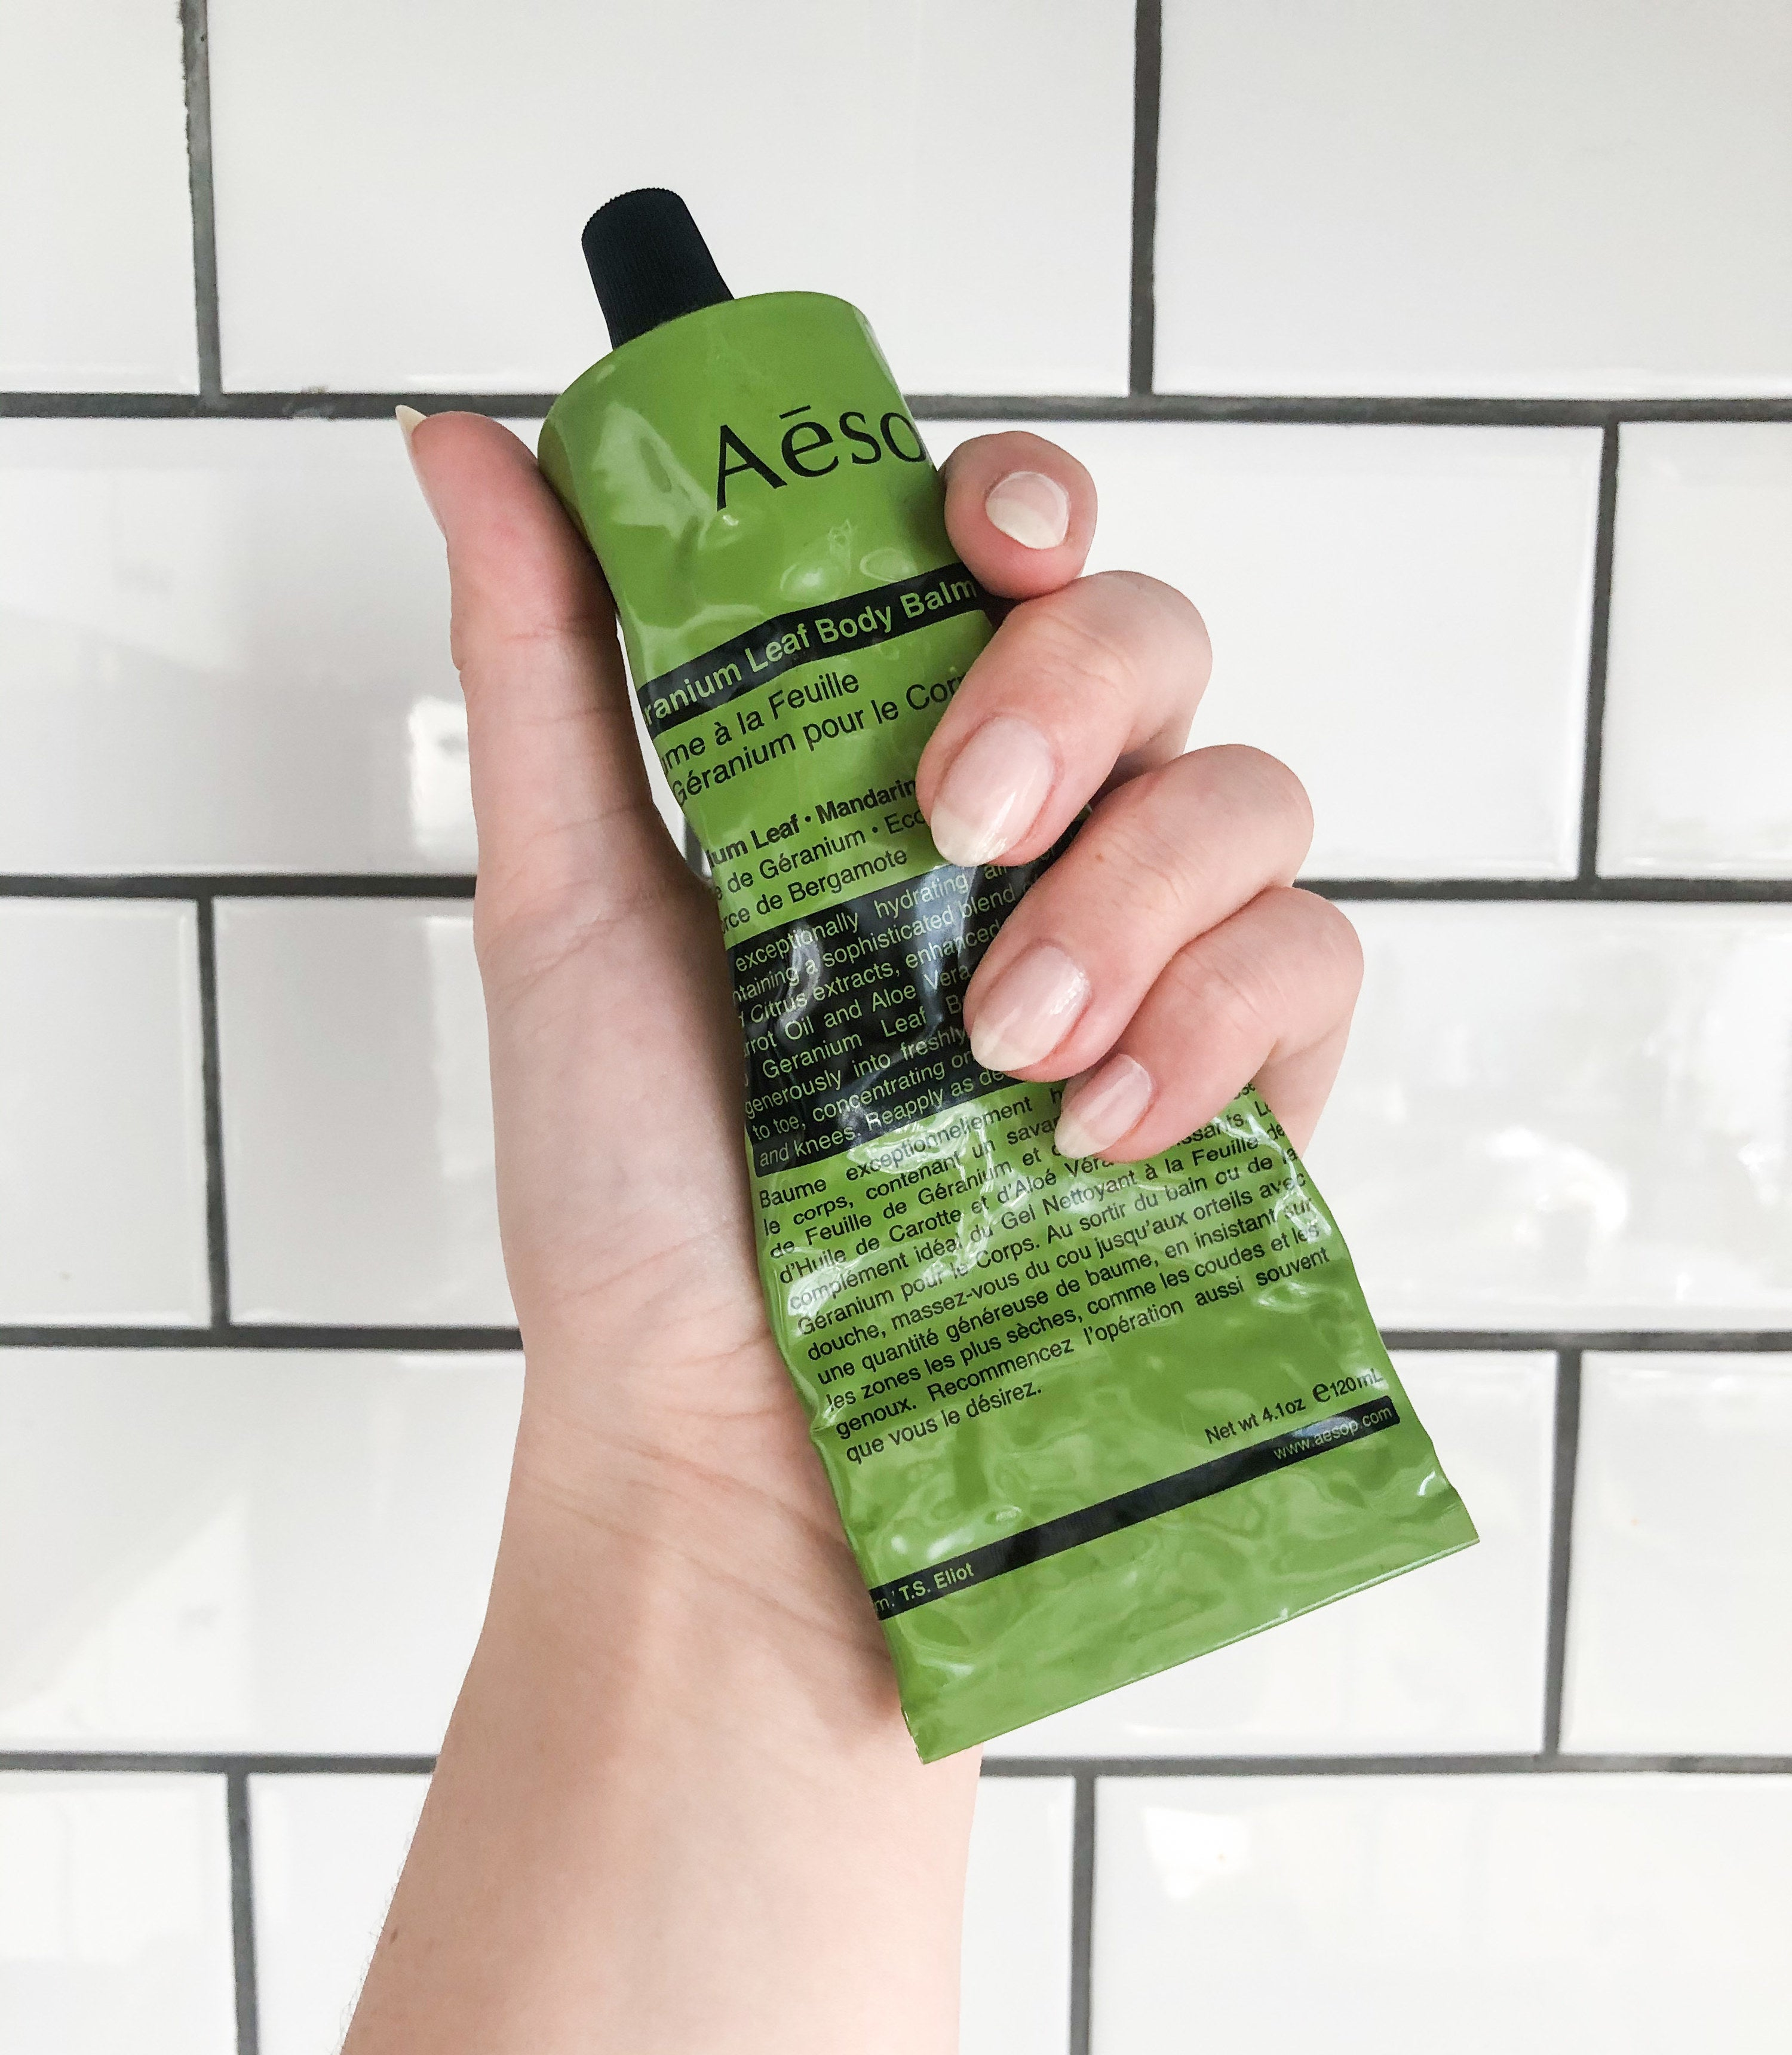 Victoria holding up a tube of the cream against a subway tile backsplash